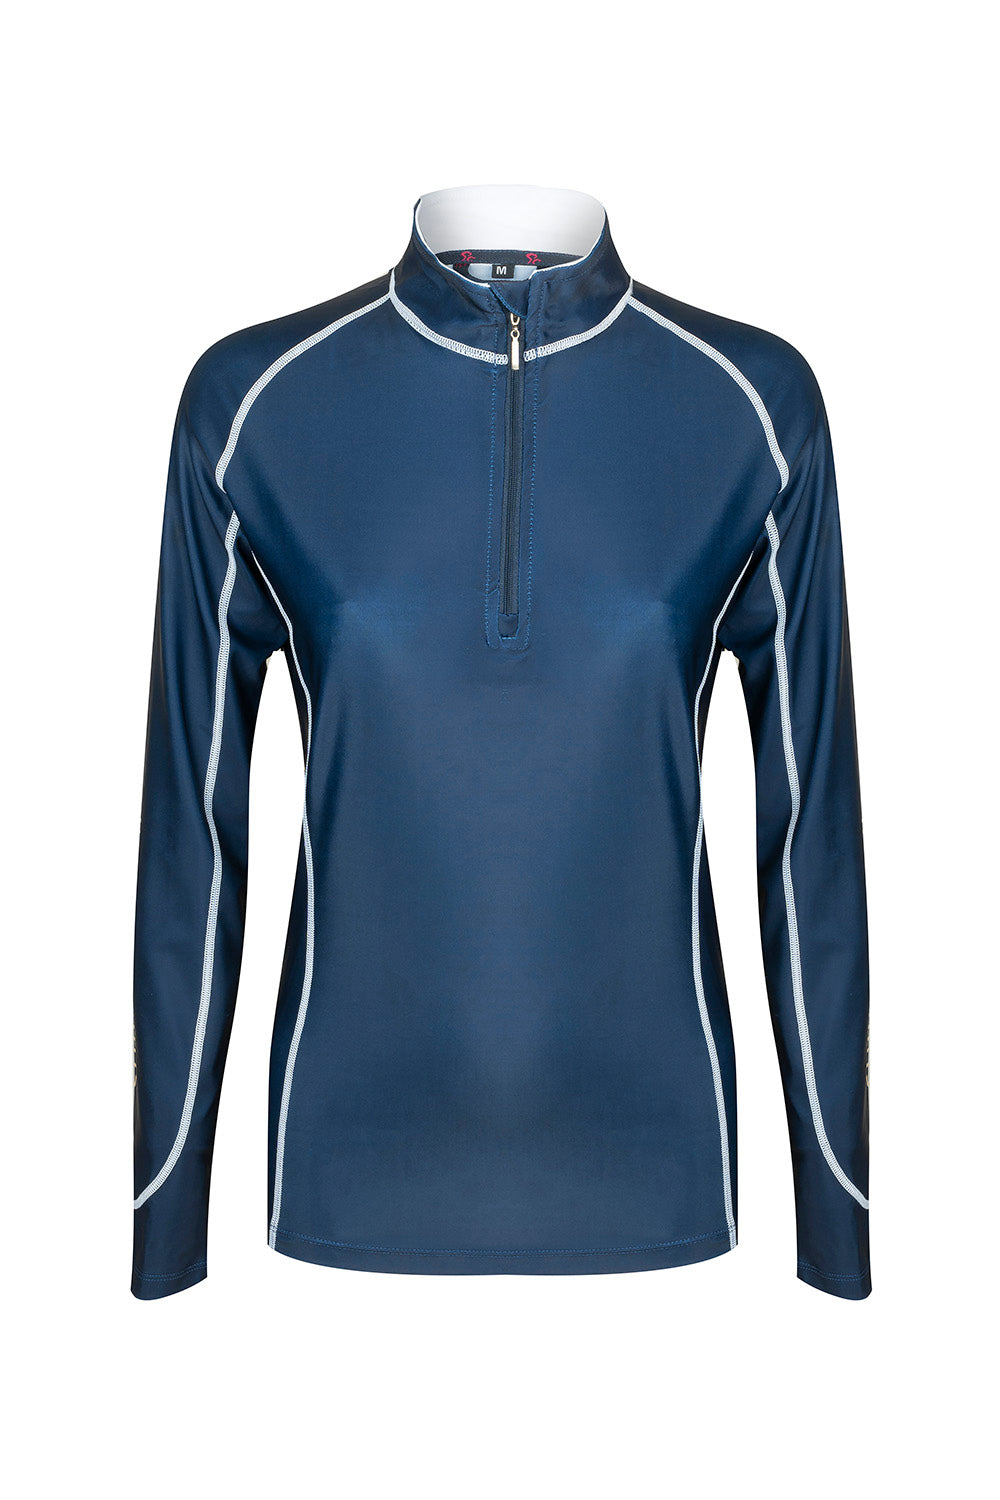 WP Mullins Sprint Lycra Top - Navy